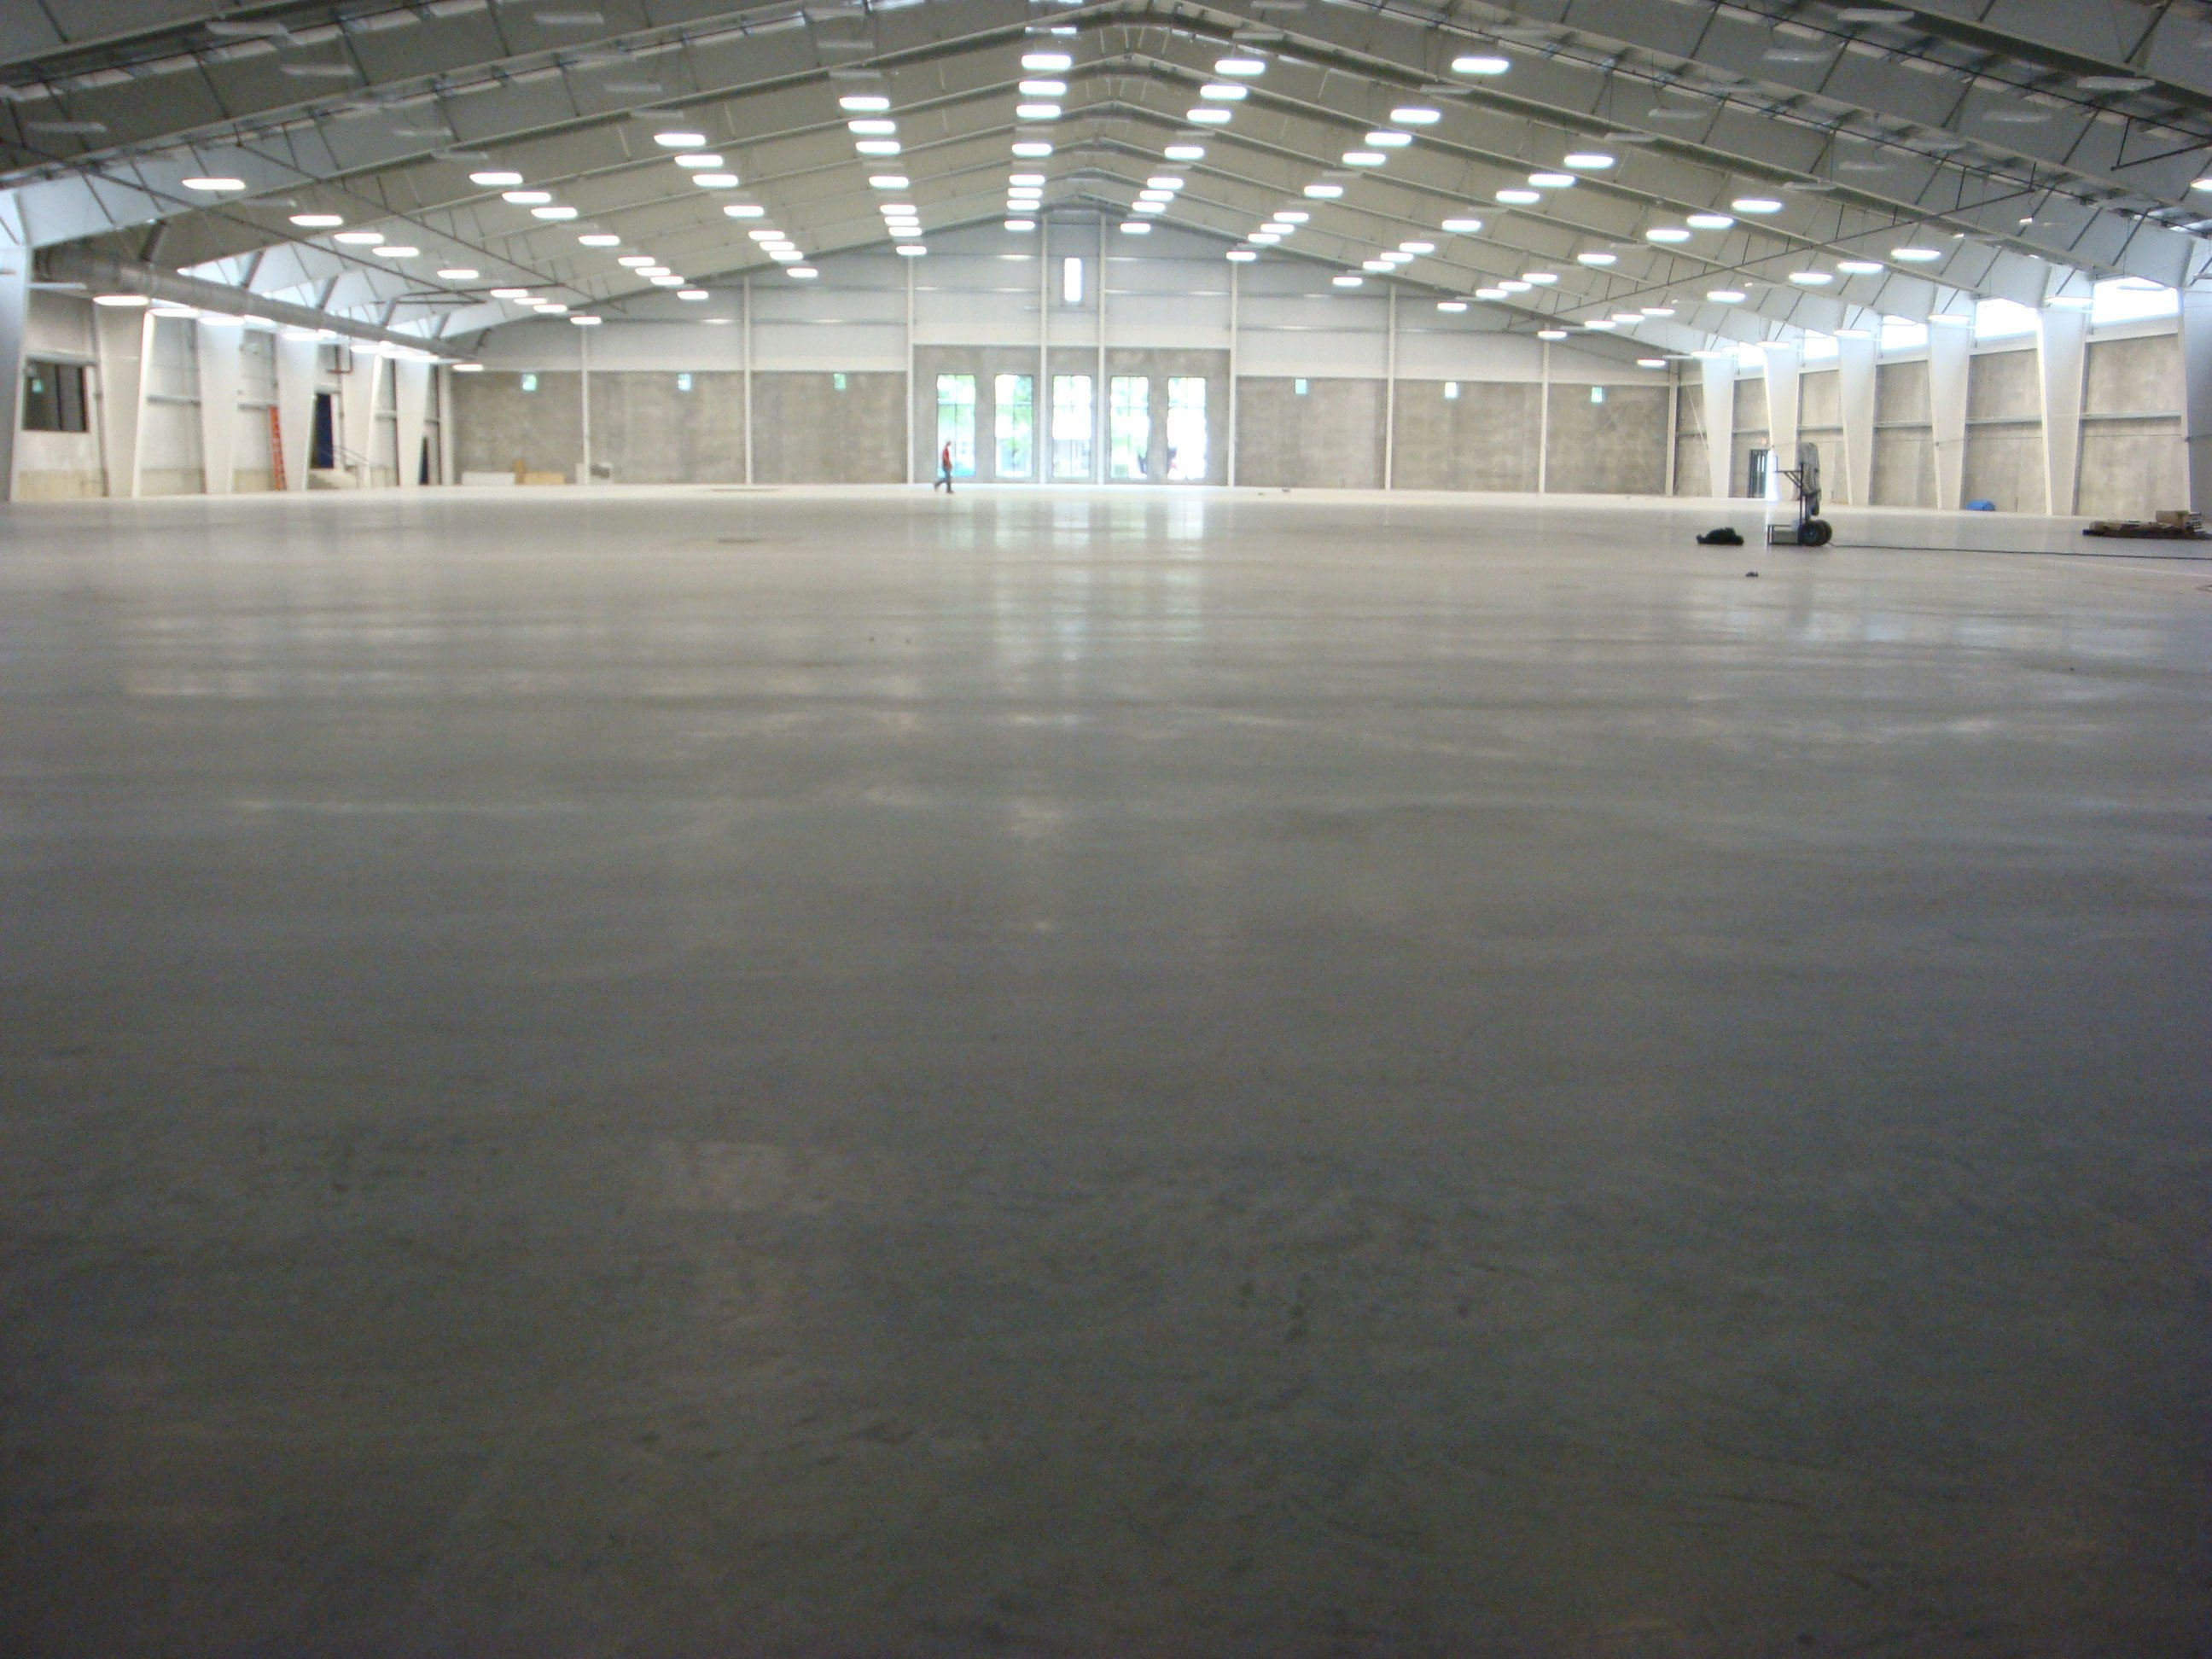 View of the concrete floor at the fieldhouse in Lincoln, NE